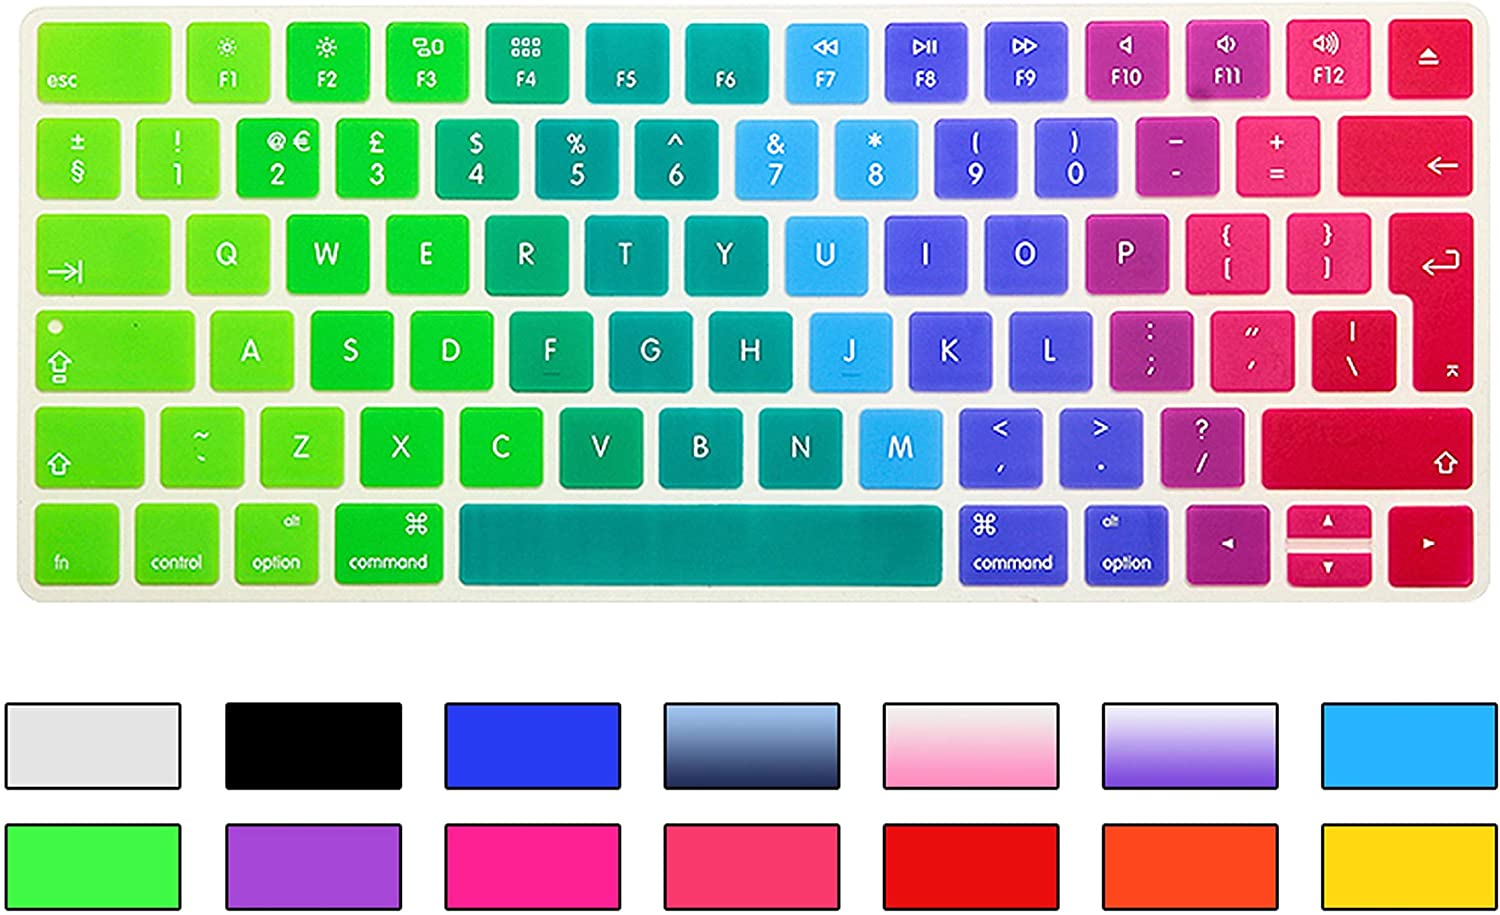 Film Pour Clavier Rainbow Gradient Magic Keyboard Cover Silicone Skin Protective Film for Magic Keyboard 2 2015 A1644 UK//EU Keyboard Version-Gradient Gray